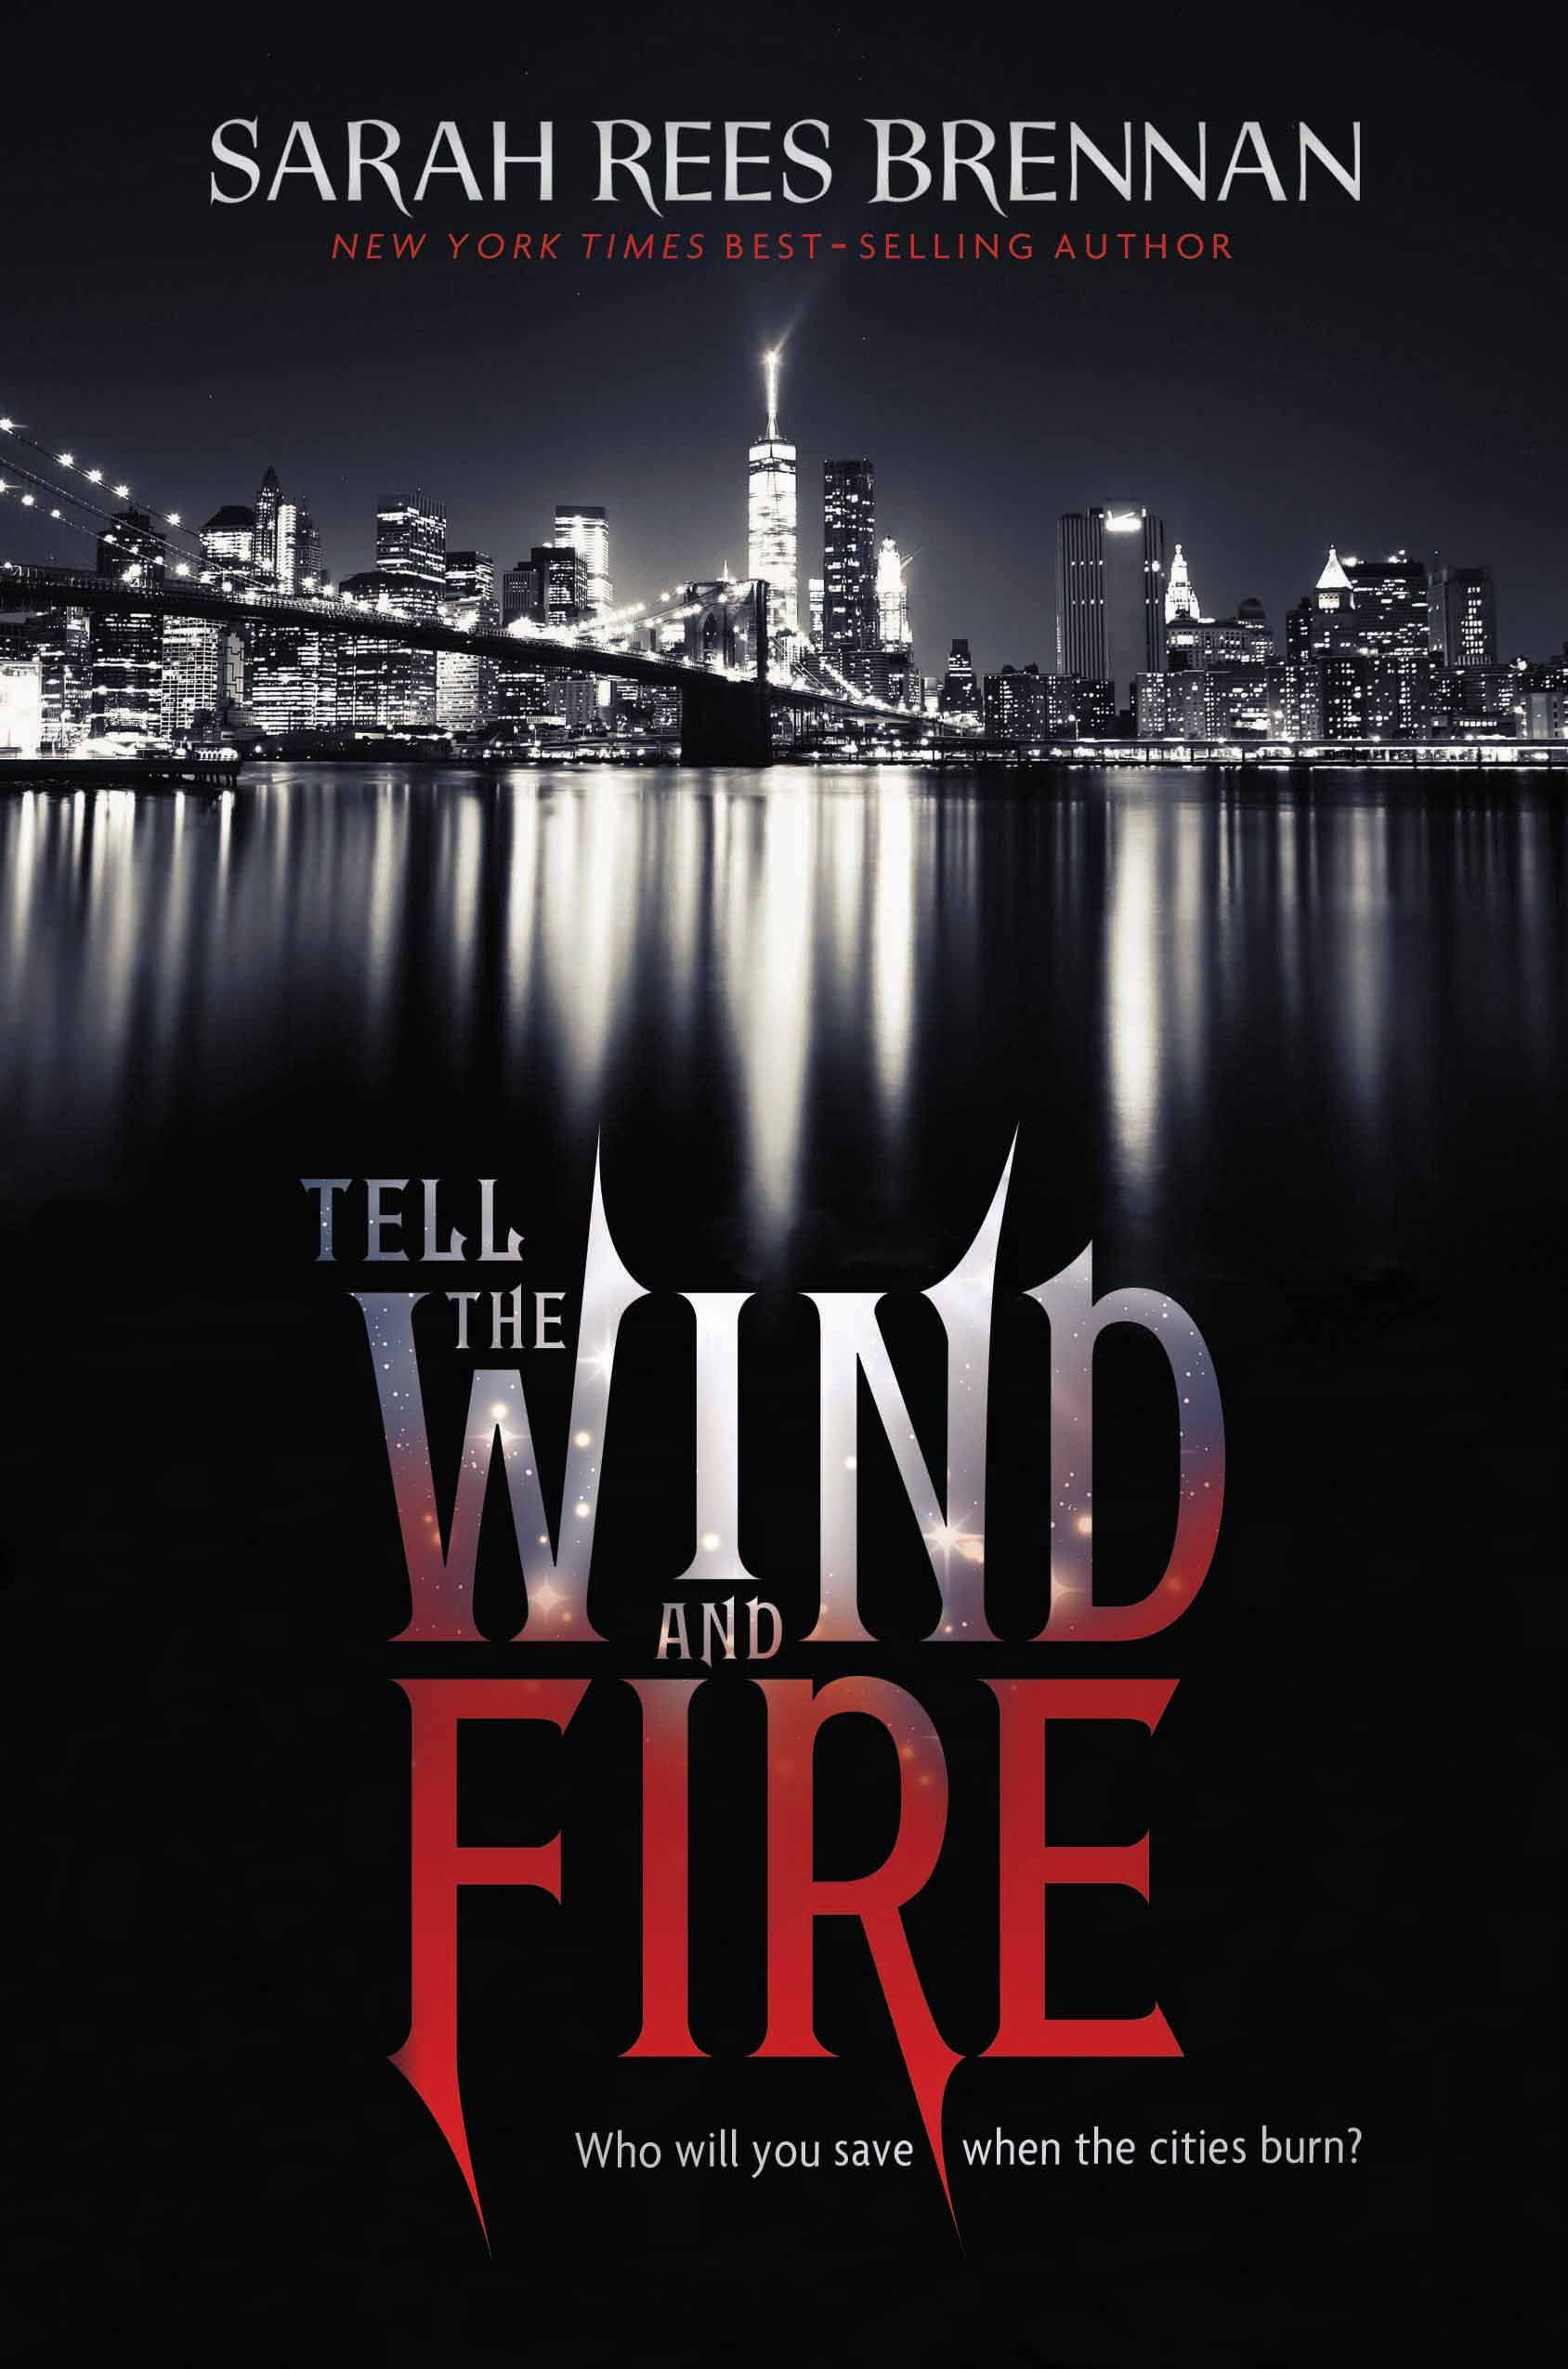 Read an exclusive excerpt and see the cover for Sarah Rees Brennan's 'Tell the Wind and Fire' | EW.com - 4 stars